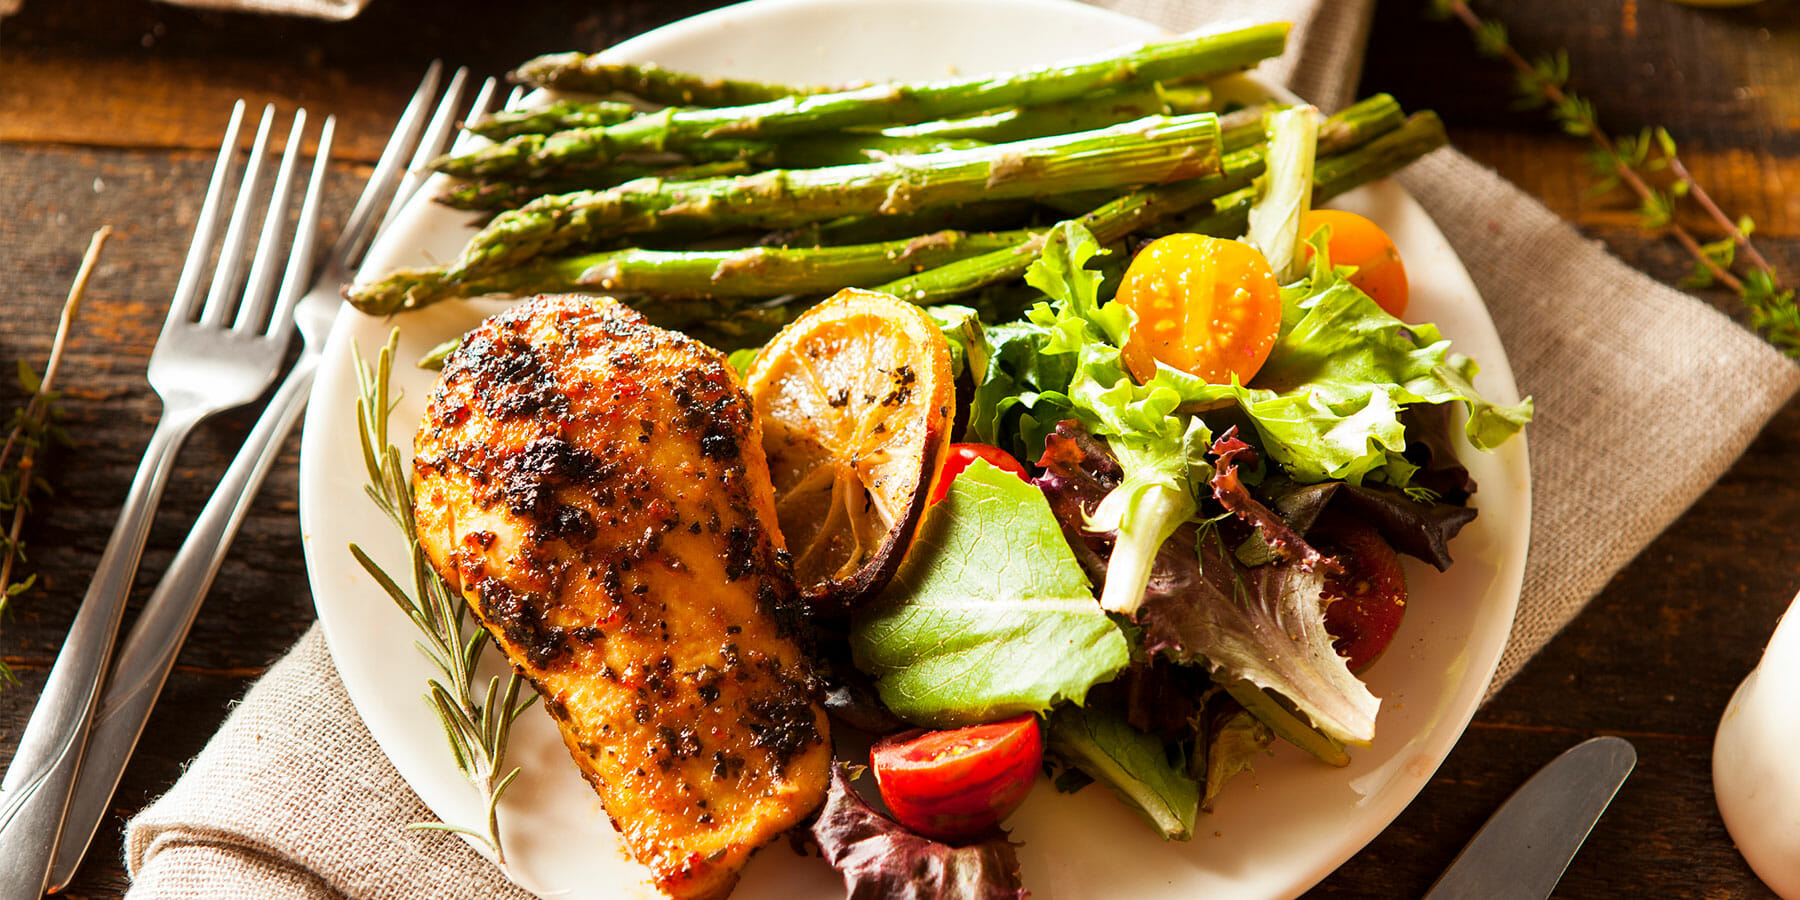 Fresh n Fit Cuisine Paleo Meal Delivery Service